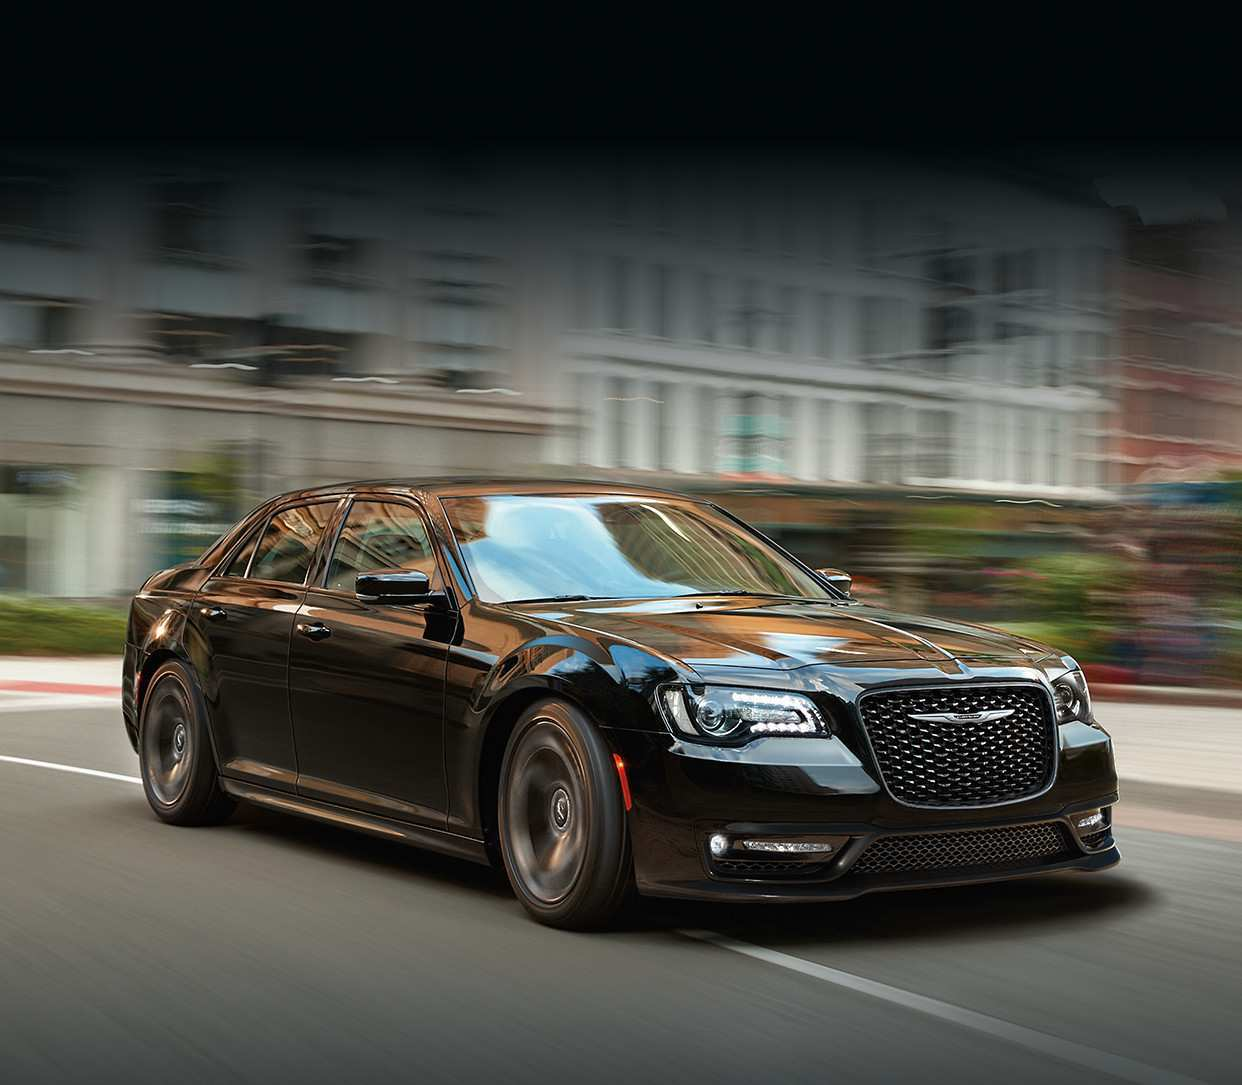 91 The Best Chrysler 300C 2019 Exterior And Interior